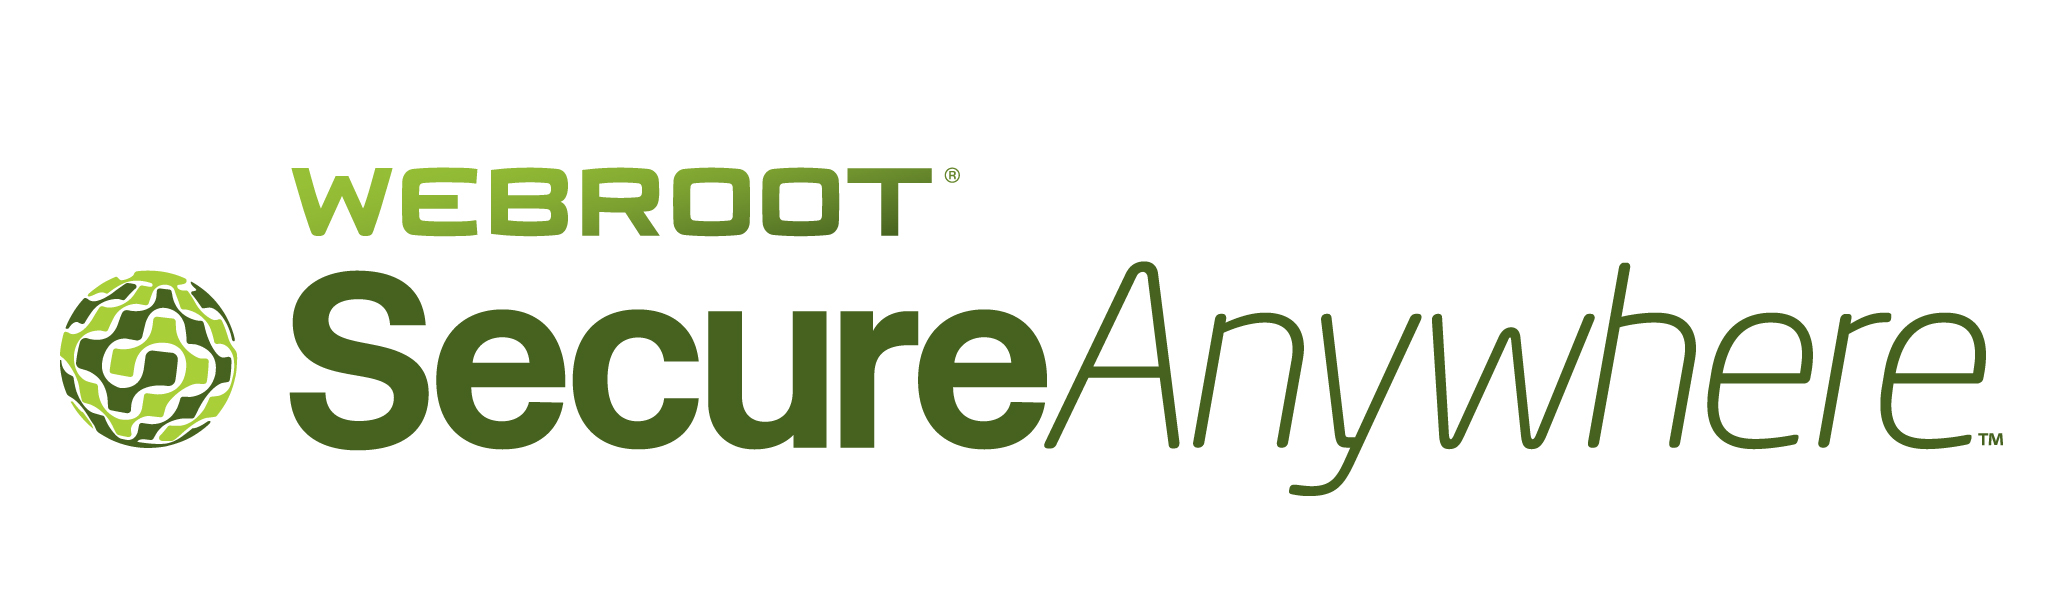 Cybersecurity amp Threat Intelligence Services  Webroot